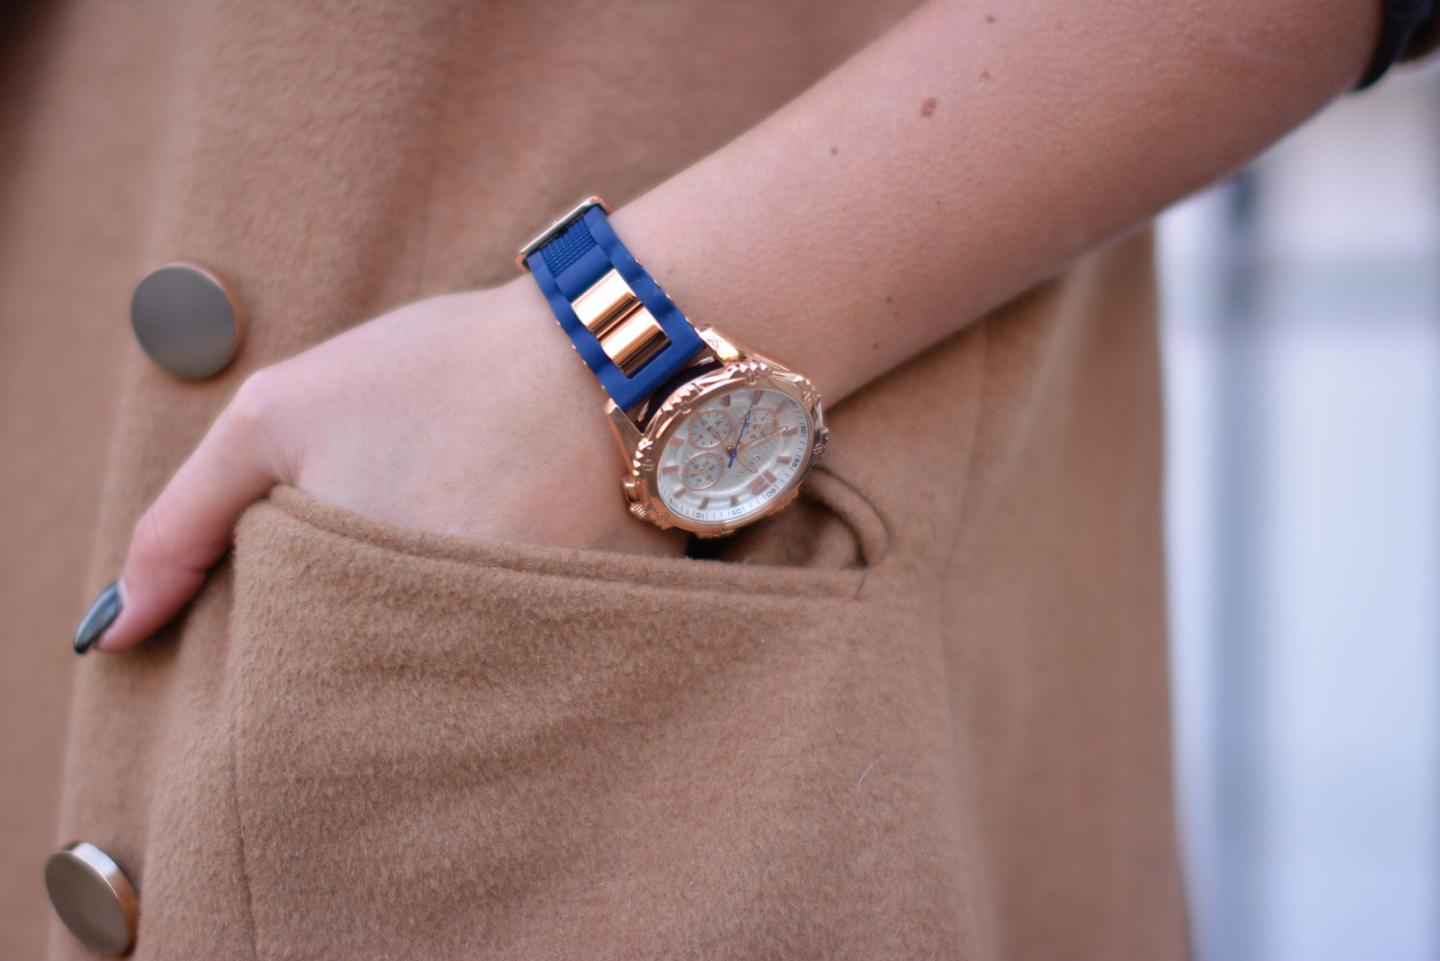 EJSTYLE - Guess watch with navy silcone strap, camel coat